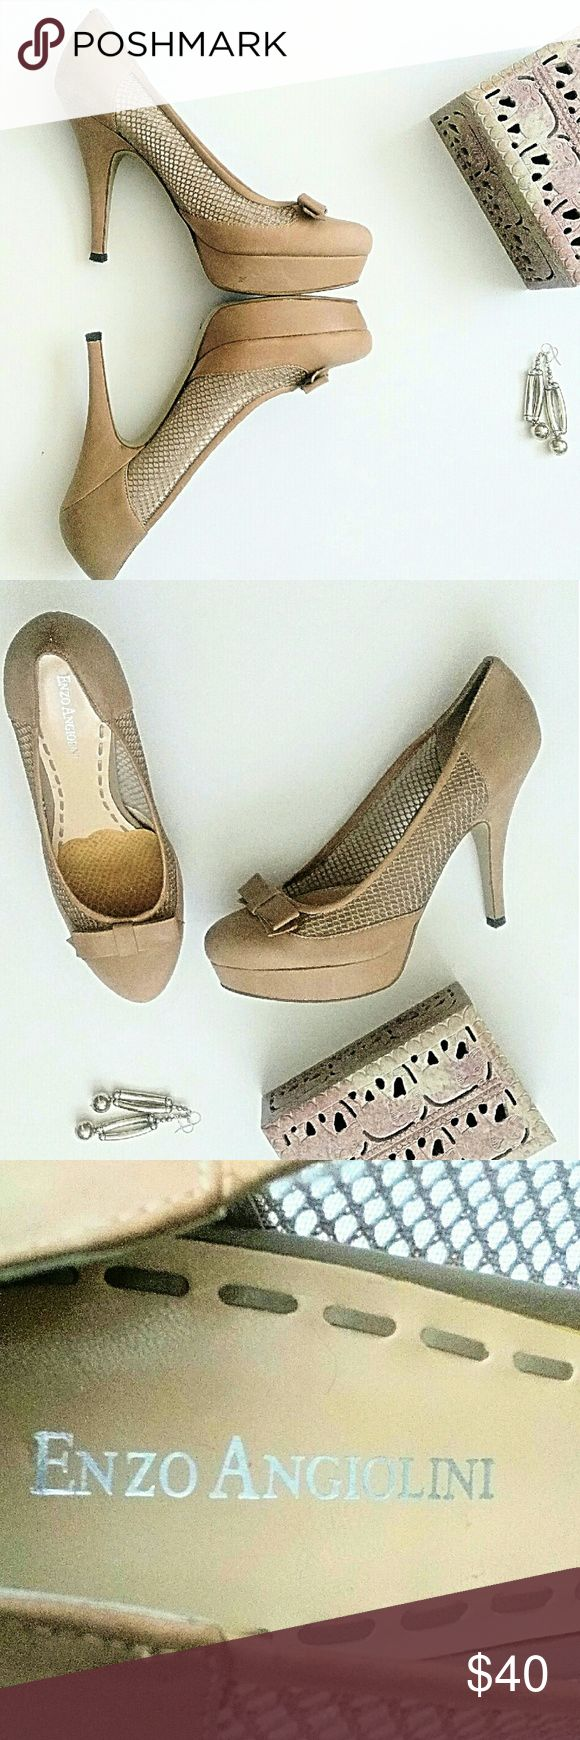 Listing Enzo Angiolini Leather BowToe Beige Pump 100% leather uppers with textile mesh inserts adorning both sides of shoes. Chic bow on almond-toe shoe fronts. Heels approx. 4.5in. w/comfortable 1in platforms to making walking easy. Height without the pain!  EUC, worn once in a wedding.  Every woman needs this kind of full on neutral pump.**Ask questions B4 U buy!** Enzo Angiolini Shoes Heels